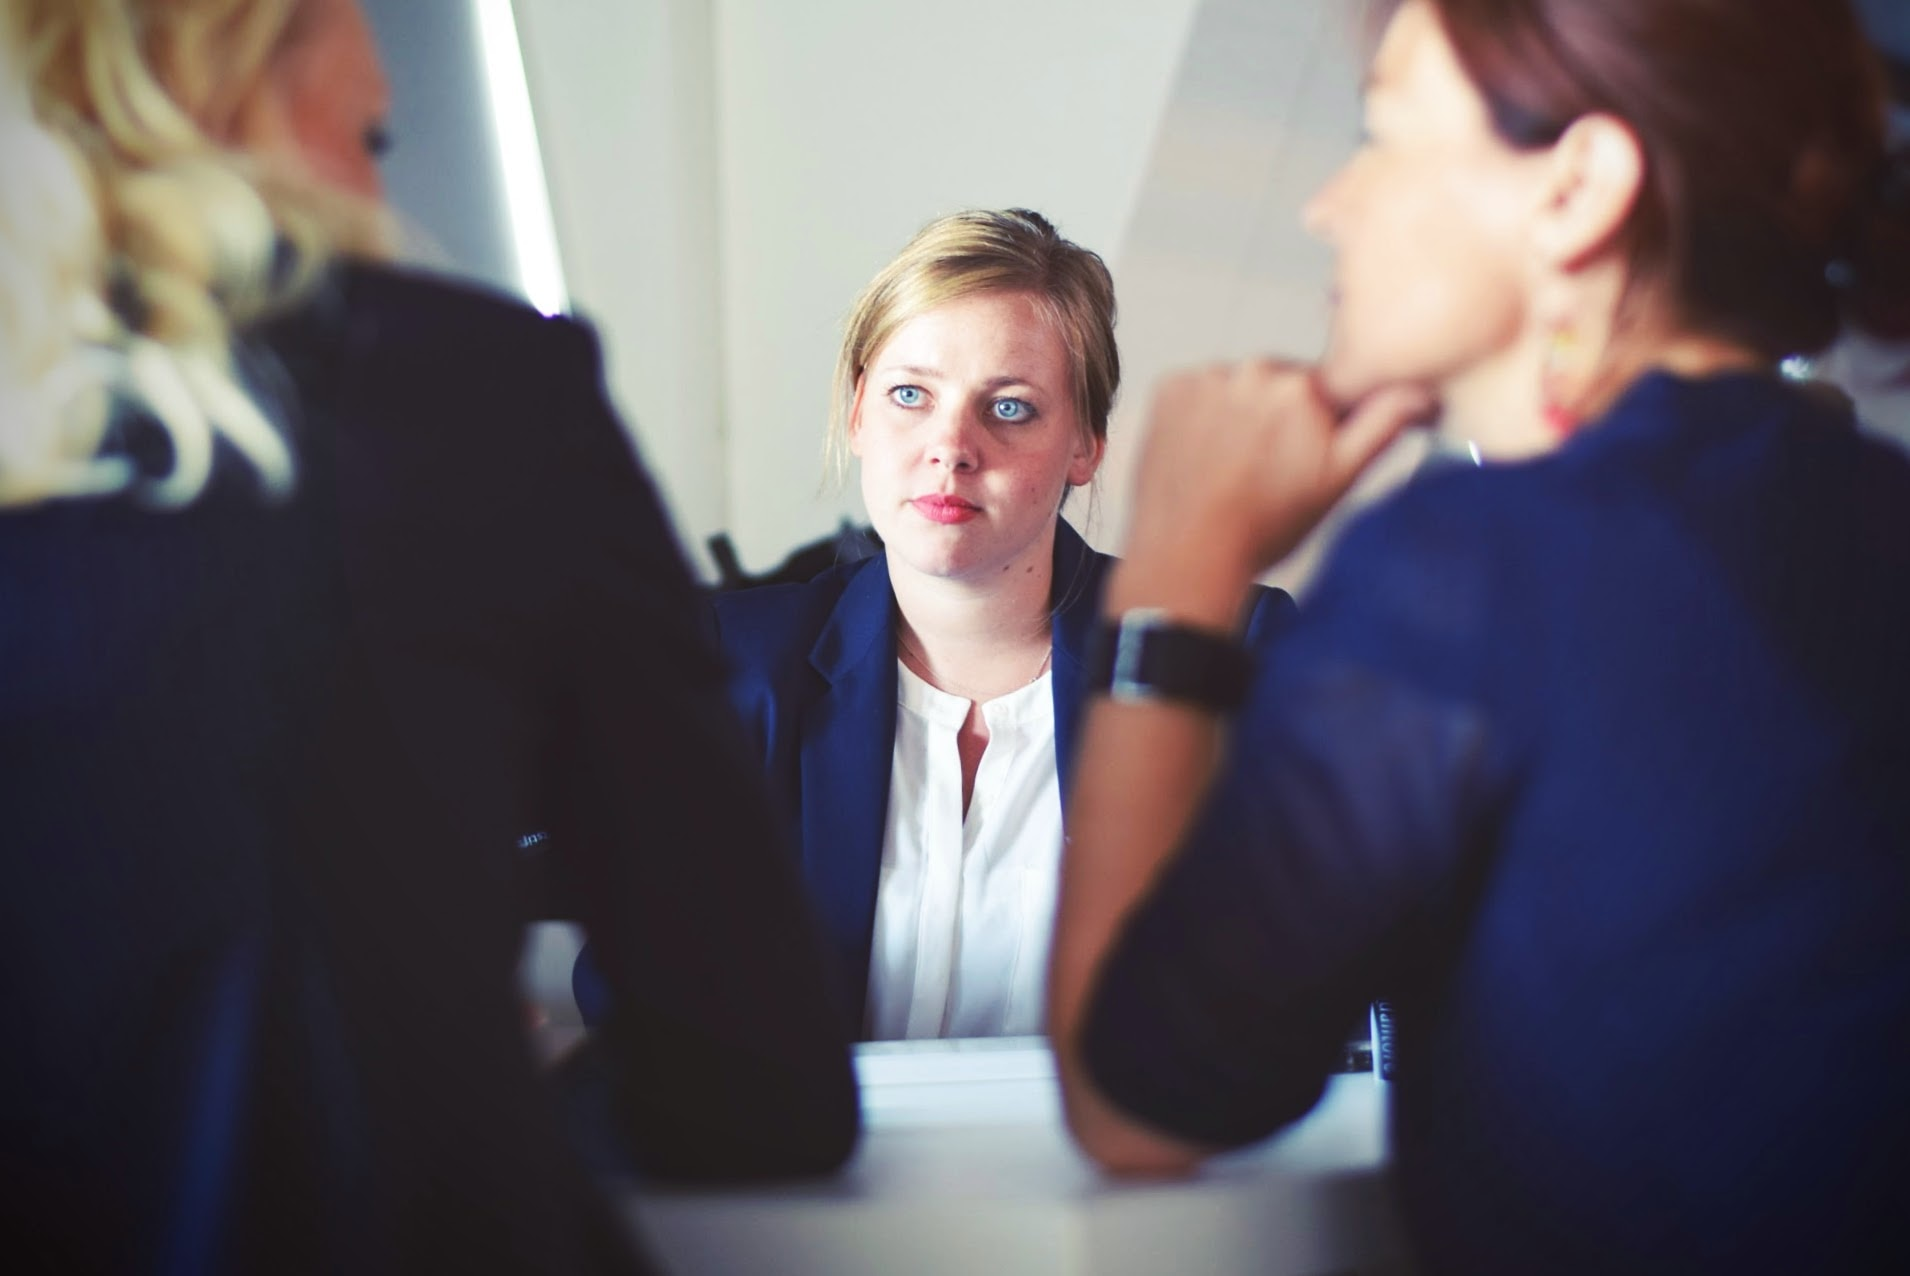 Woman in business suit sitting across the table from other businesswoman during an interview